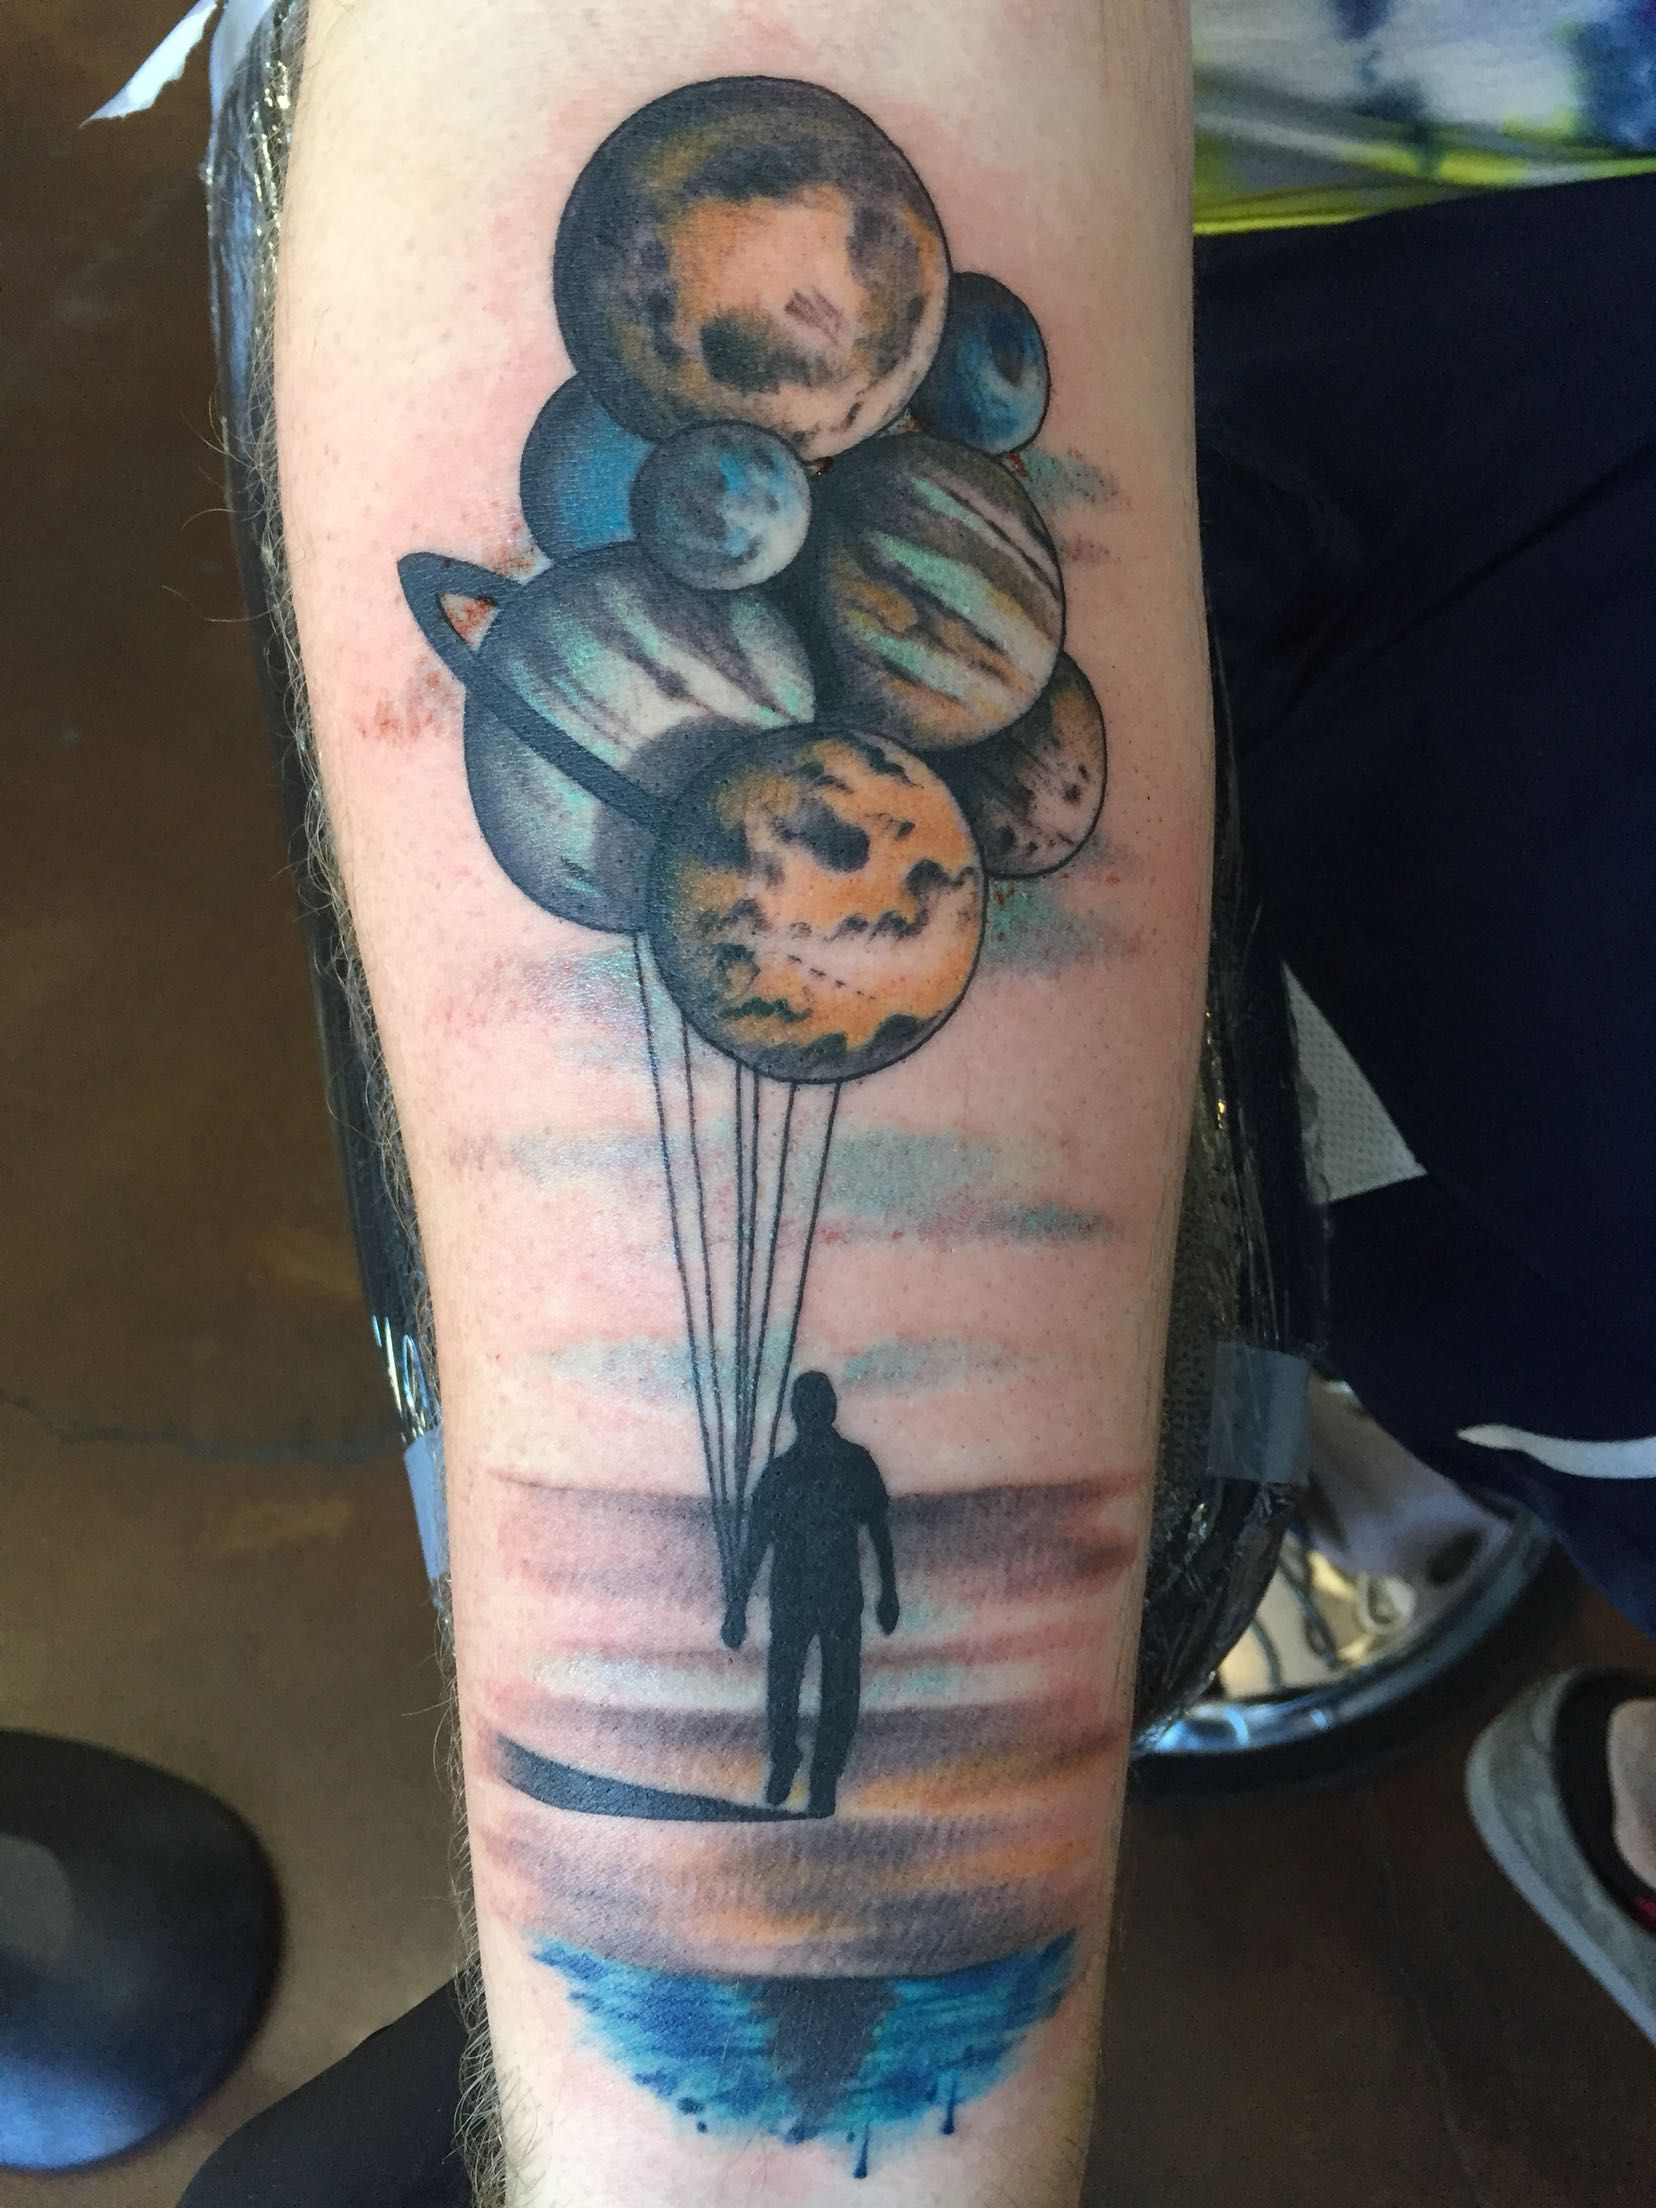 Planet Balloons by Chris Melzo at Black Cat Tattoo in Reno,NV ...